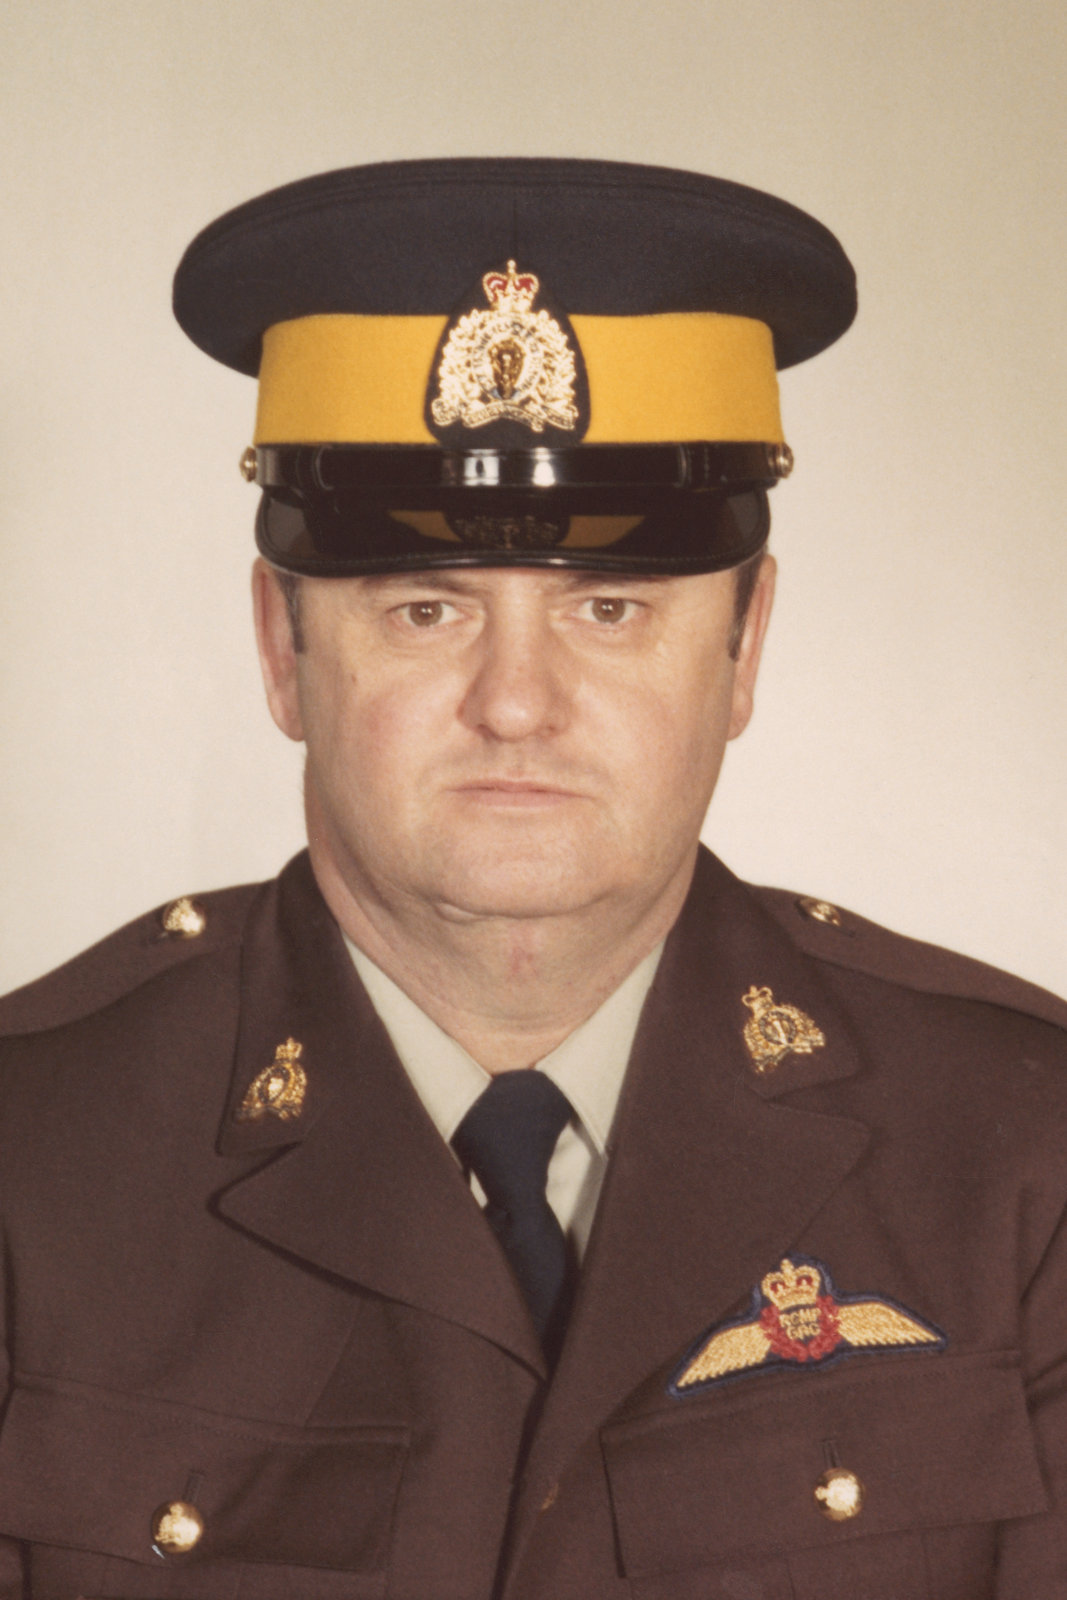 Special Constable Wayne Graham Myers– © Her Majesty the Queen in Right of Canada as represented by the Royal Canadian Mounted Police